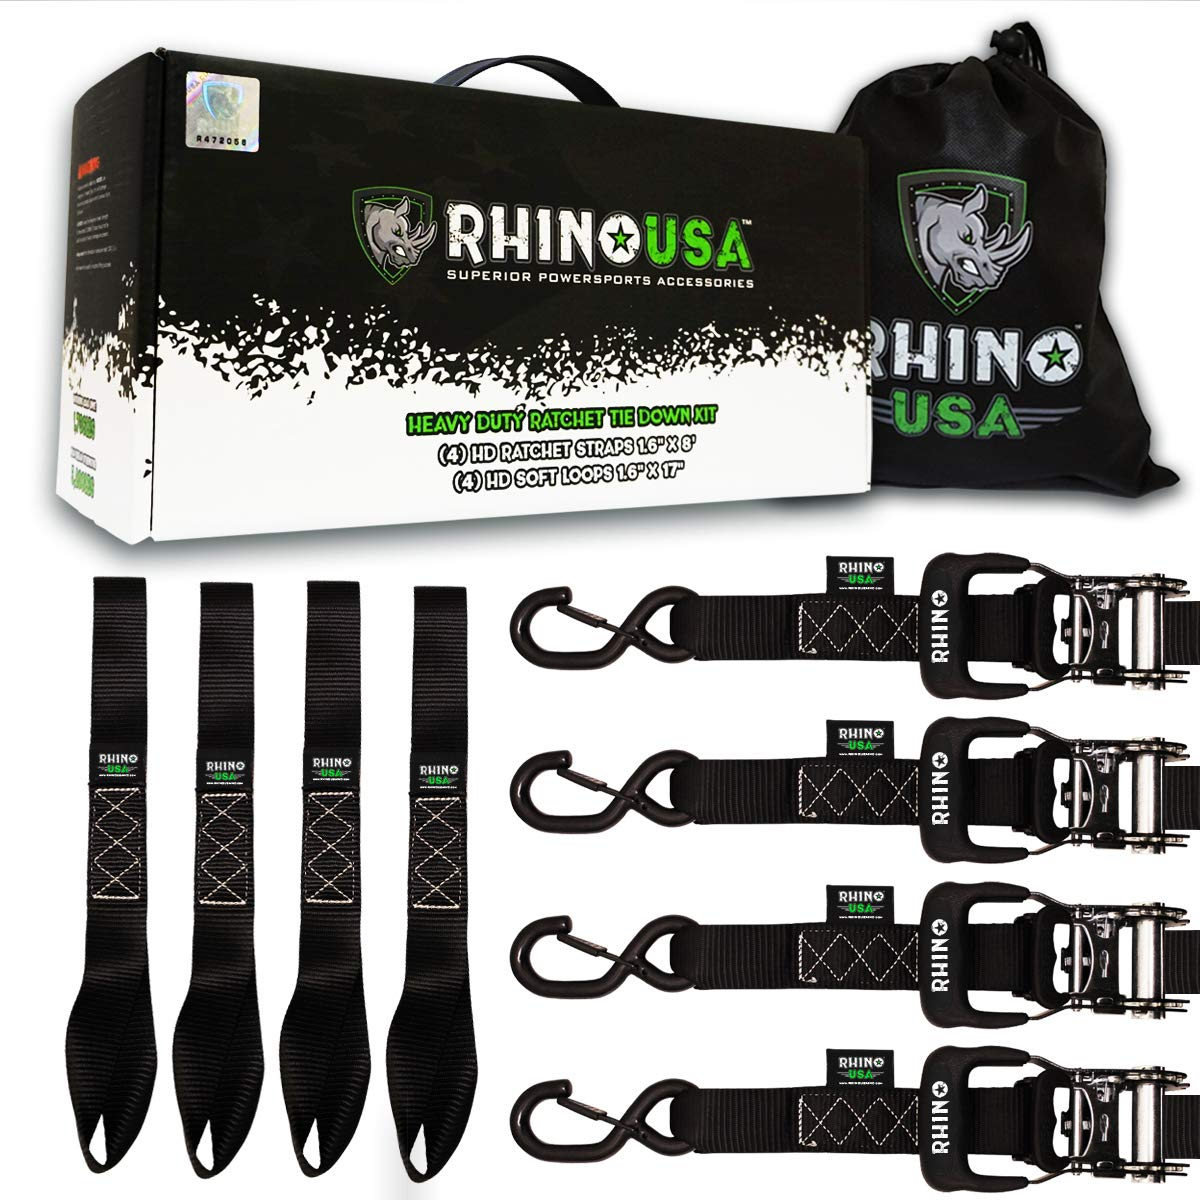 "RHINO USA Ratchet Straps Motorcycle Tie Down Kit, 5,208 Break Strength - (4) Heavy Duty 1.6"" x 8' Rachet Tiedowns with Padded Handles & Coated Chromoly S Hooks + (4) Soft Loop Tie-Downs (BLACK)"